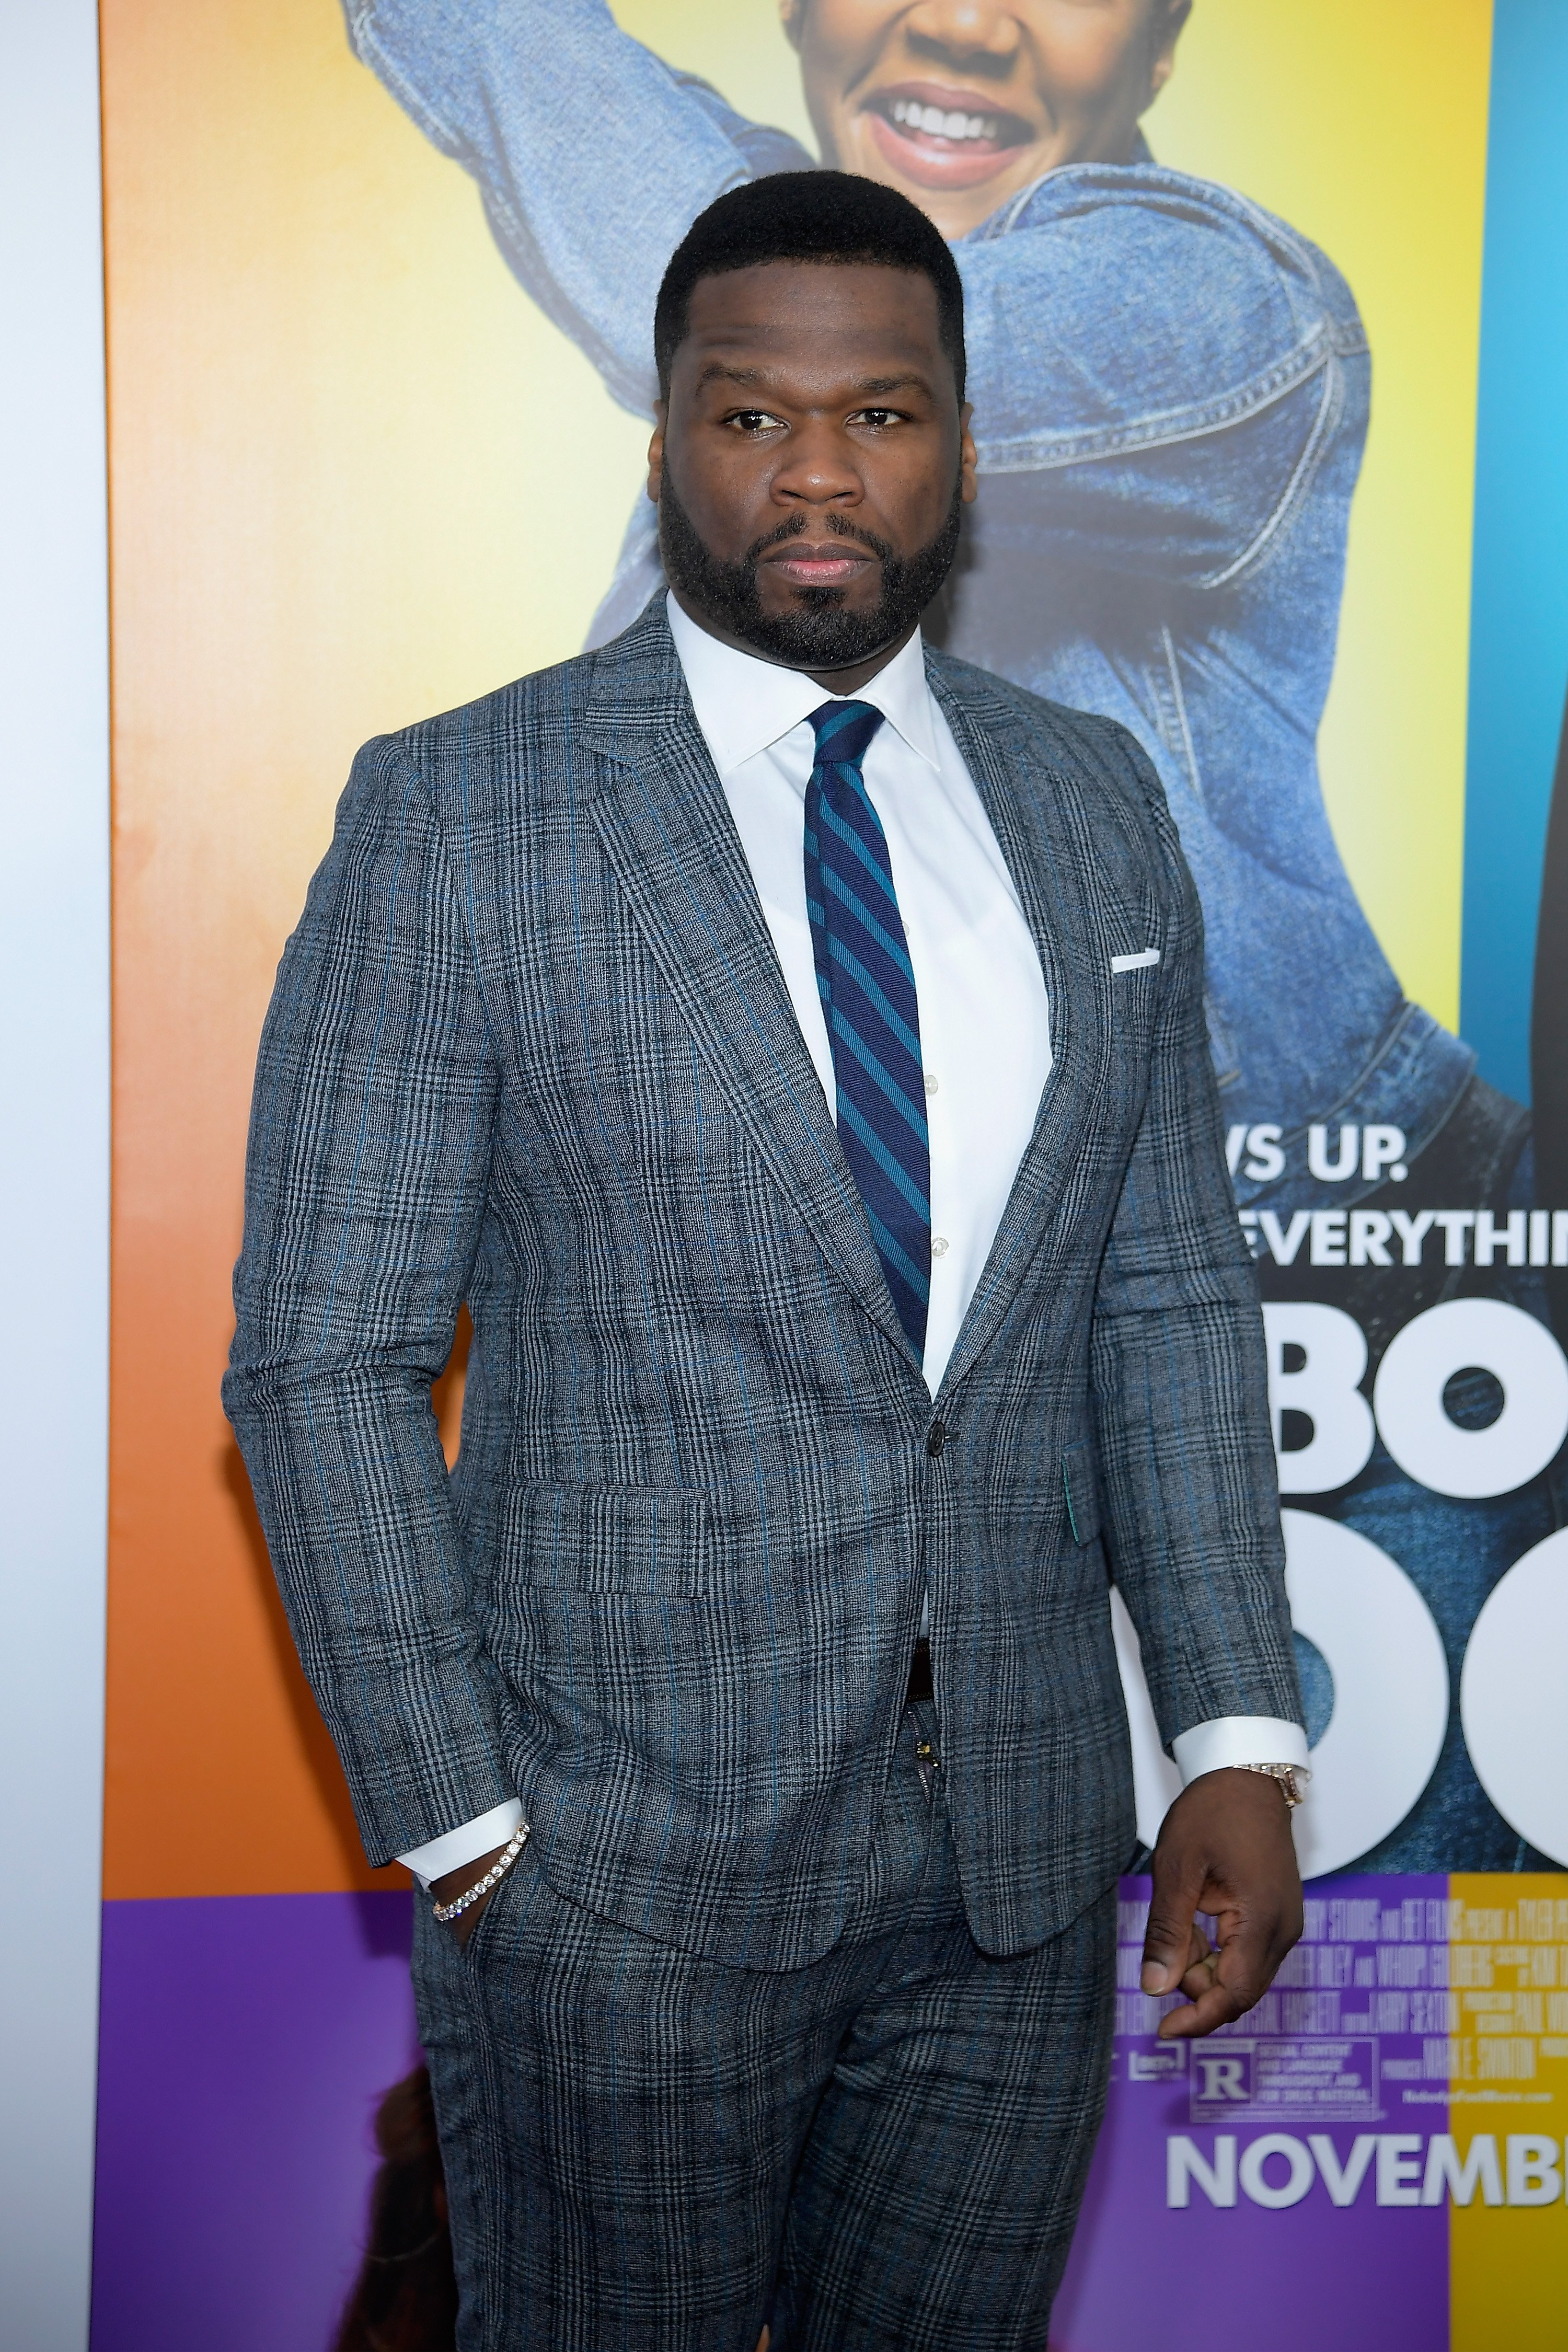 50 Cent at the world premiere of 'Nobody's Fool' on Oct. 28, 2018 in New York | Photo: Getty Images